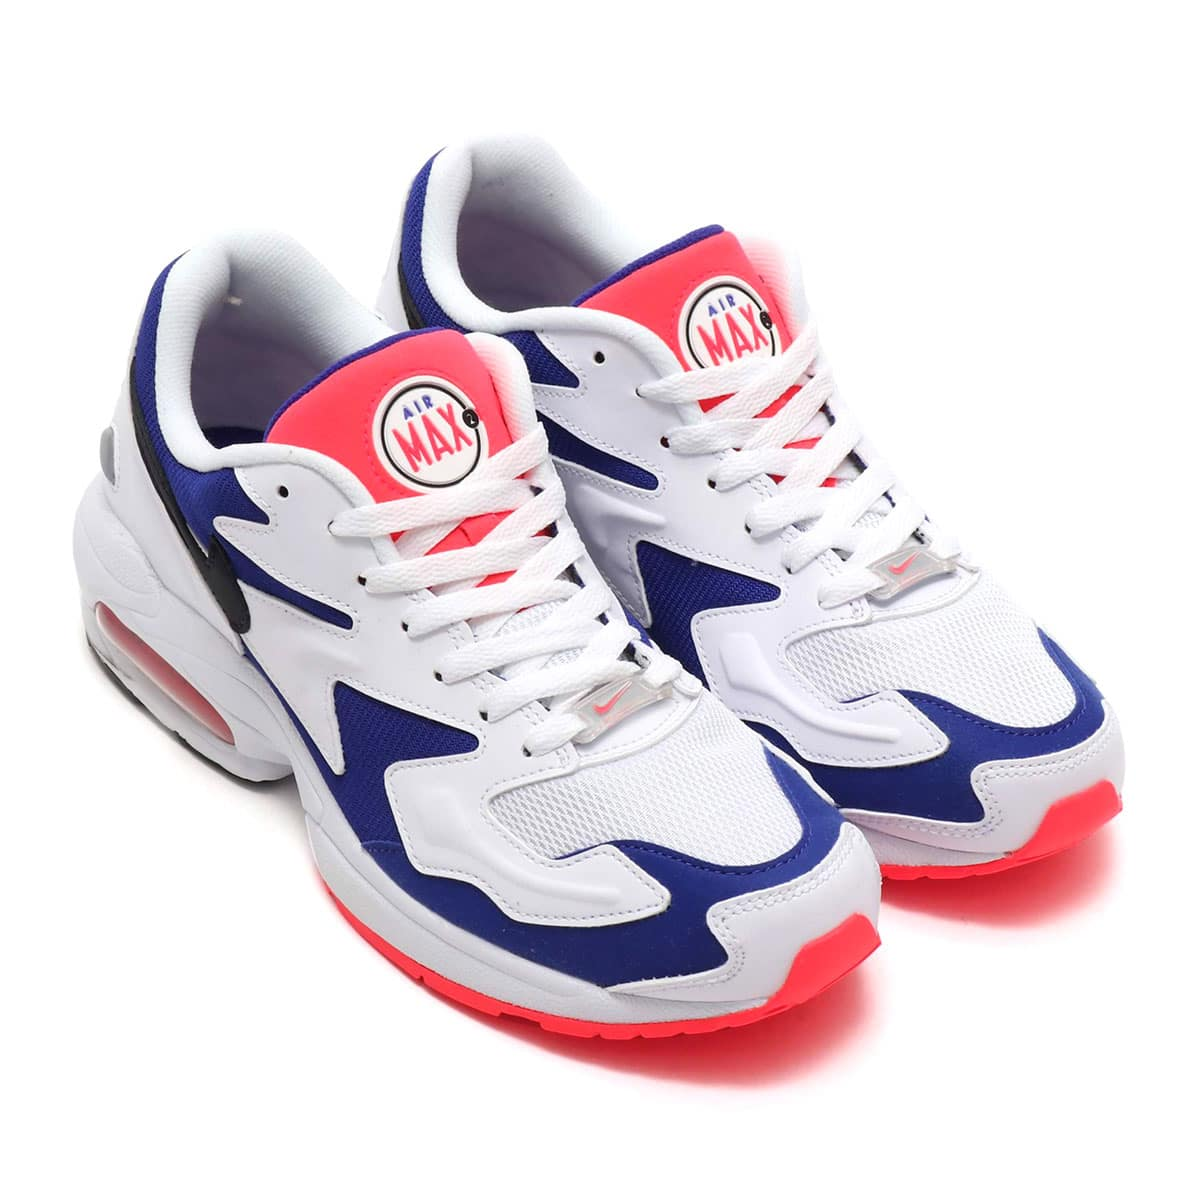 NIKE AIR MAX2 LIGHT WHITE/BLACK-ULTRAMARINE-SLR RD 19SU-S_photo_large